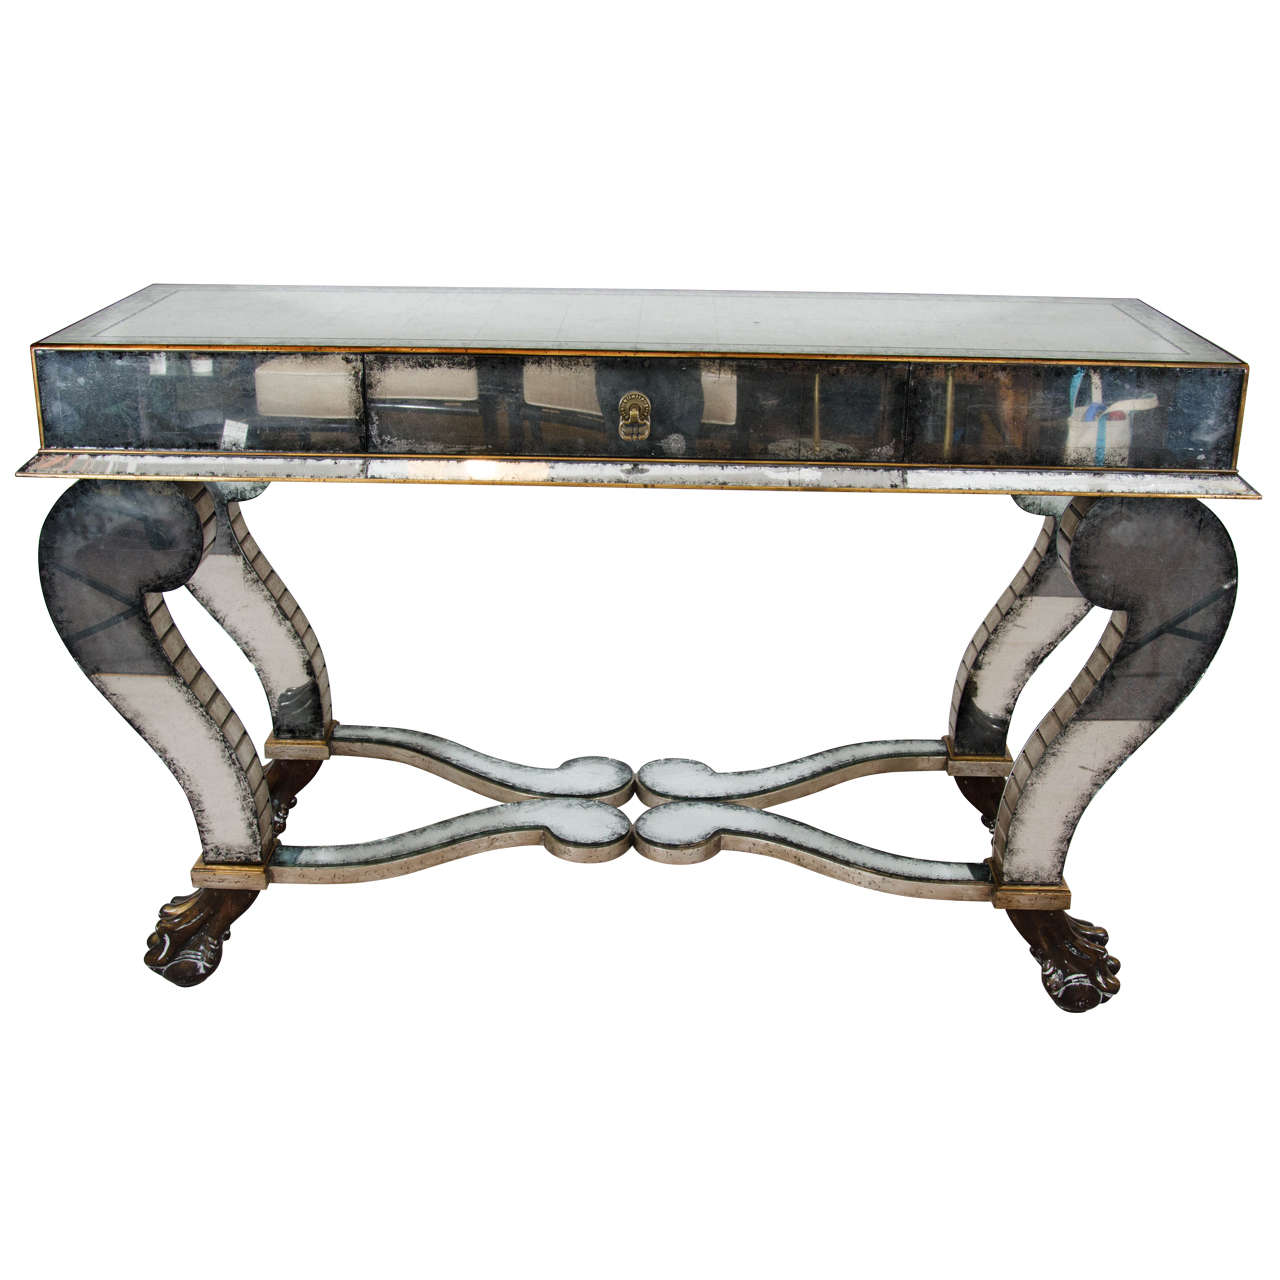 Antiqued mirrored console table with ball and claw feet at 1stdibs antiqued mirrored console table with ball and claw feet 1 geotapseo Choice Image